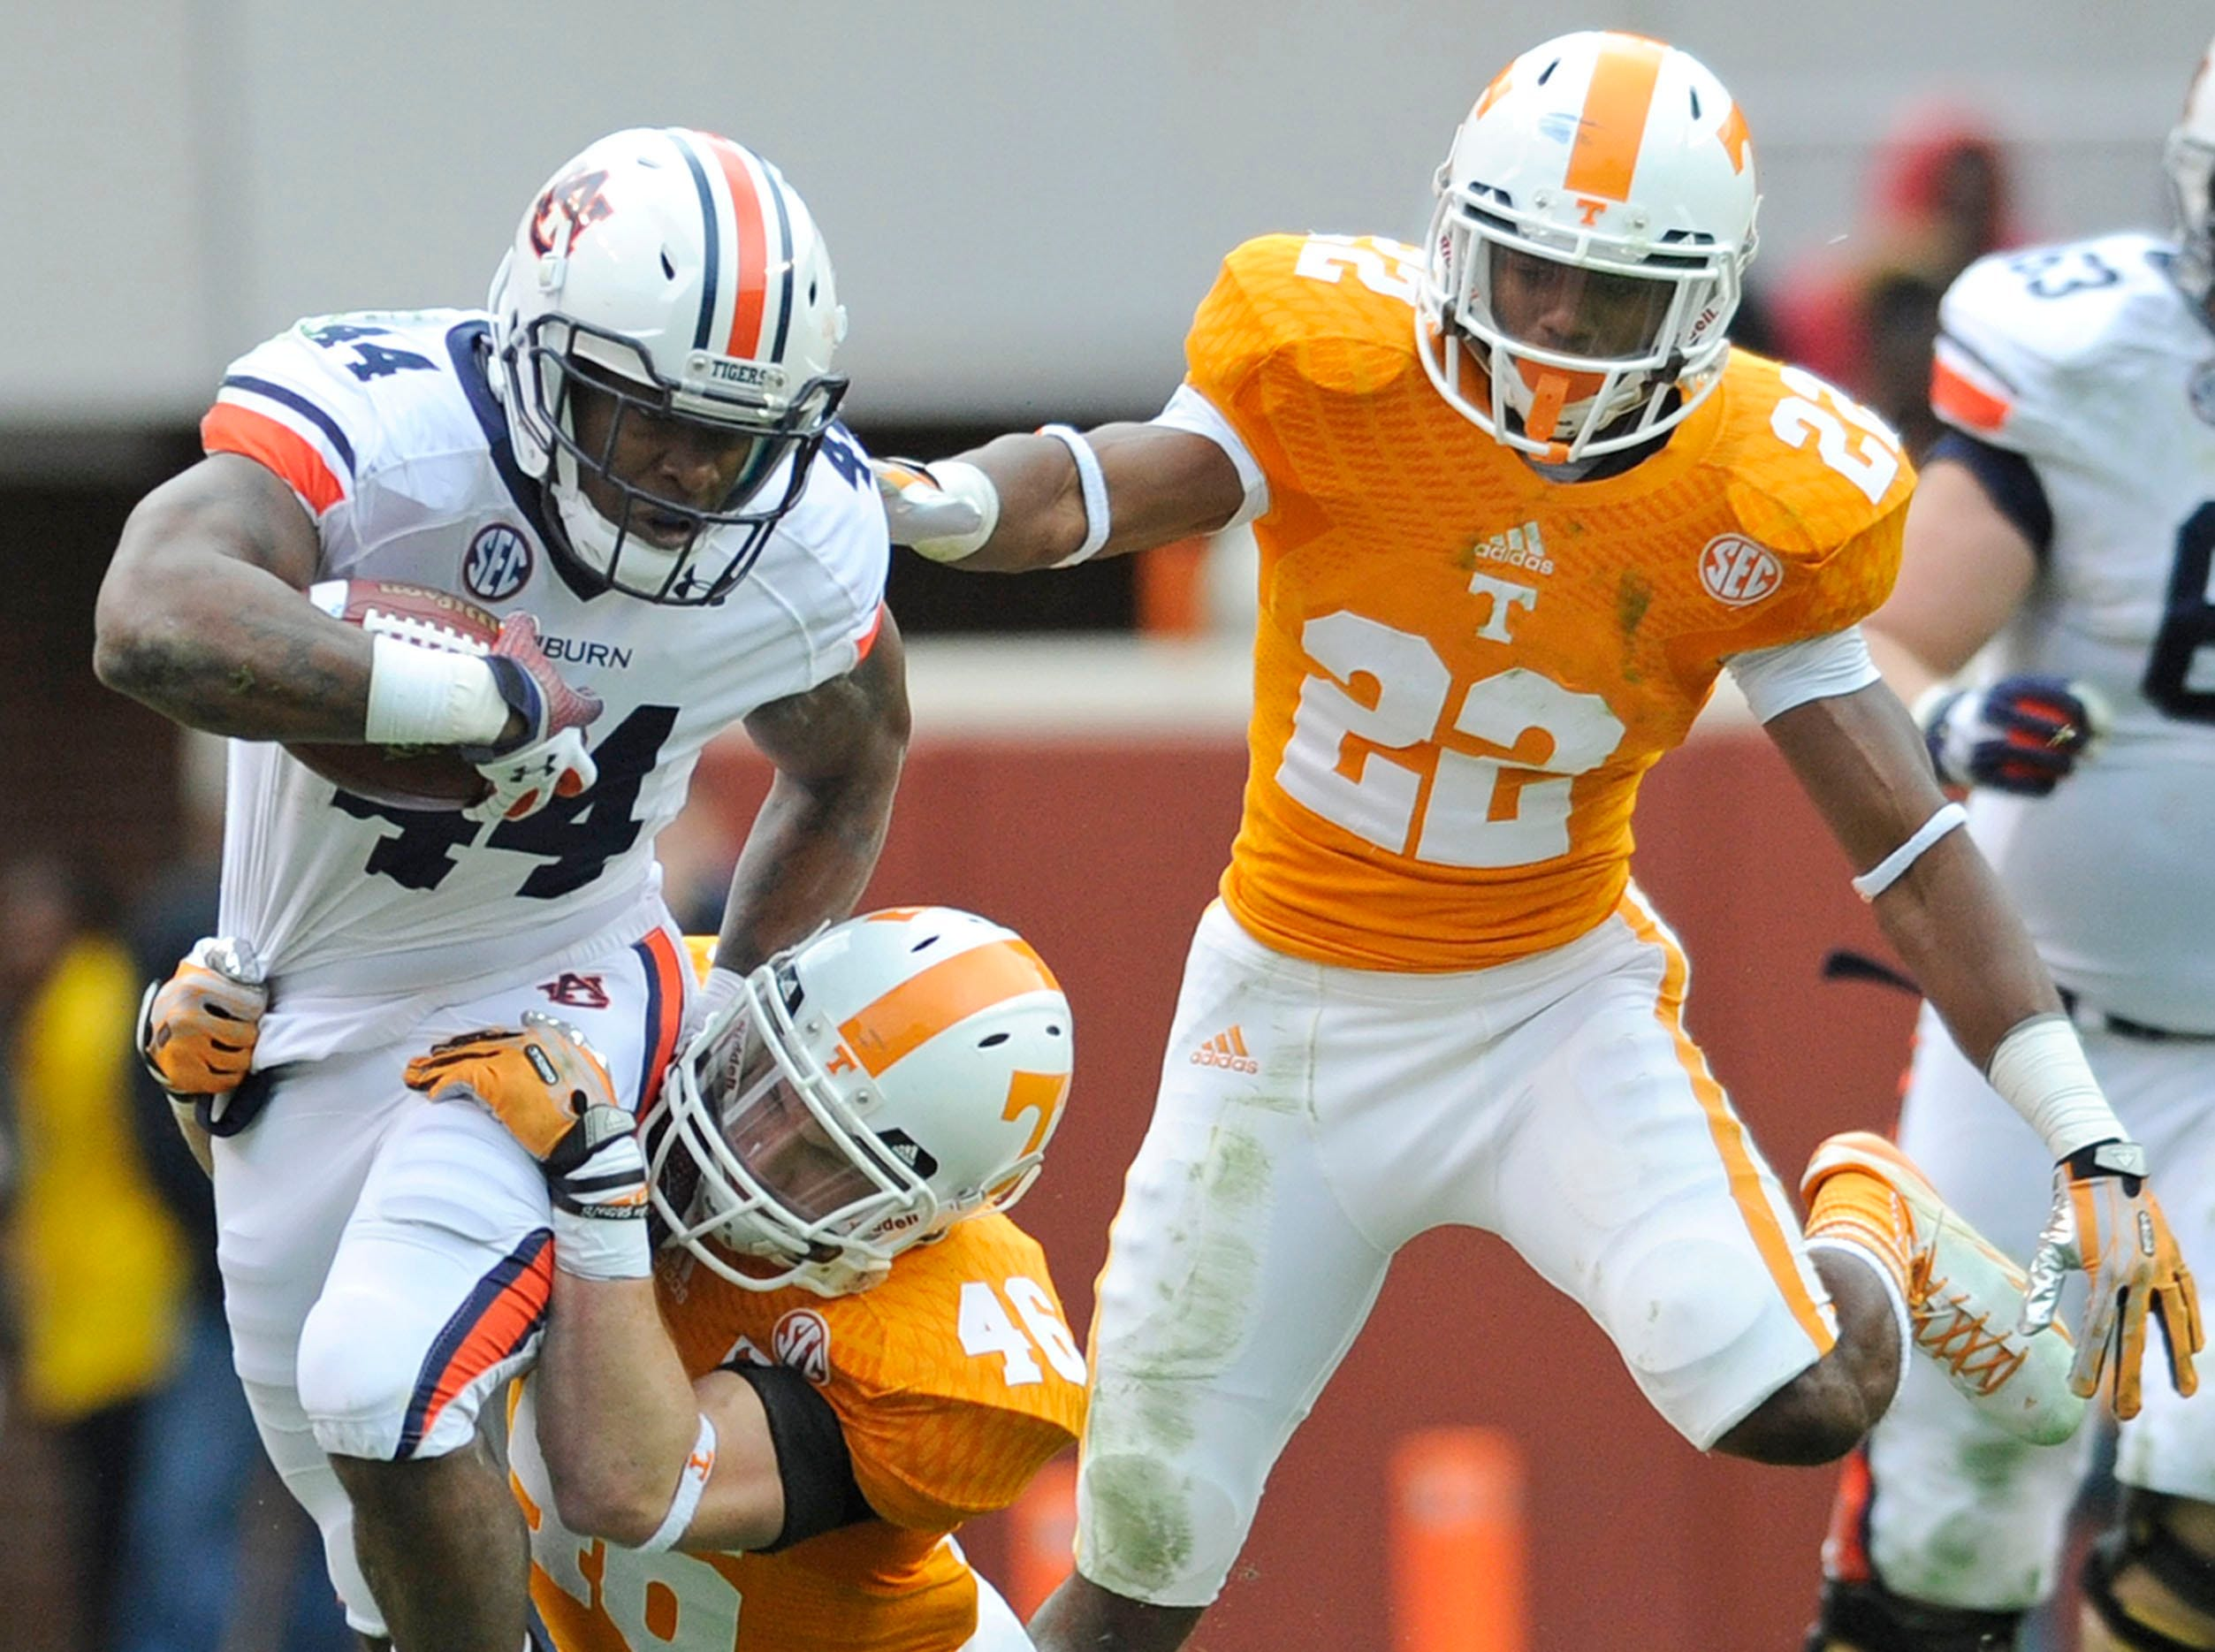 Auburn running back Cameron Artis-Payne (44) breaks tackles by Tennessee defensive back Max Arnold (46) and Tennessee defensive back Malik Foreman (22) during the second half at Neyland Stadium in Knoxville on Saturday, Nov. 9, 2013.